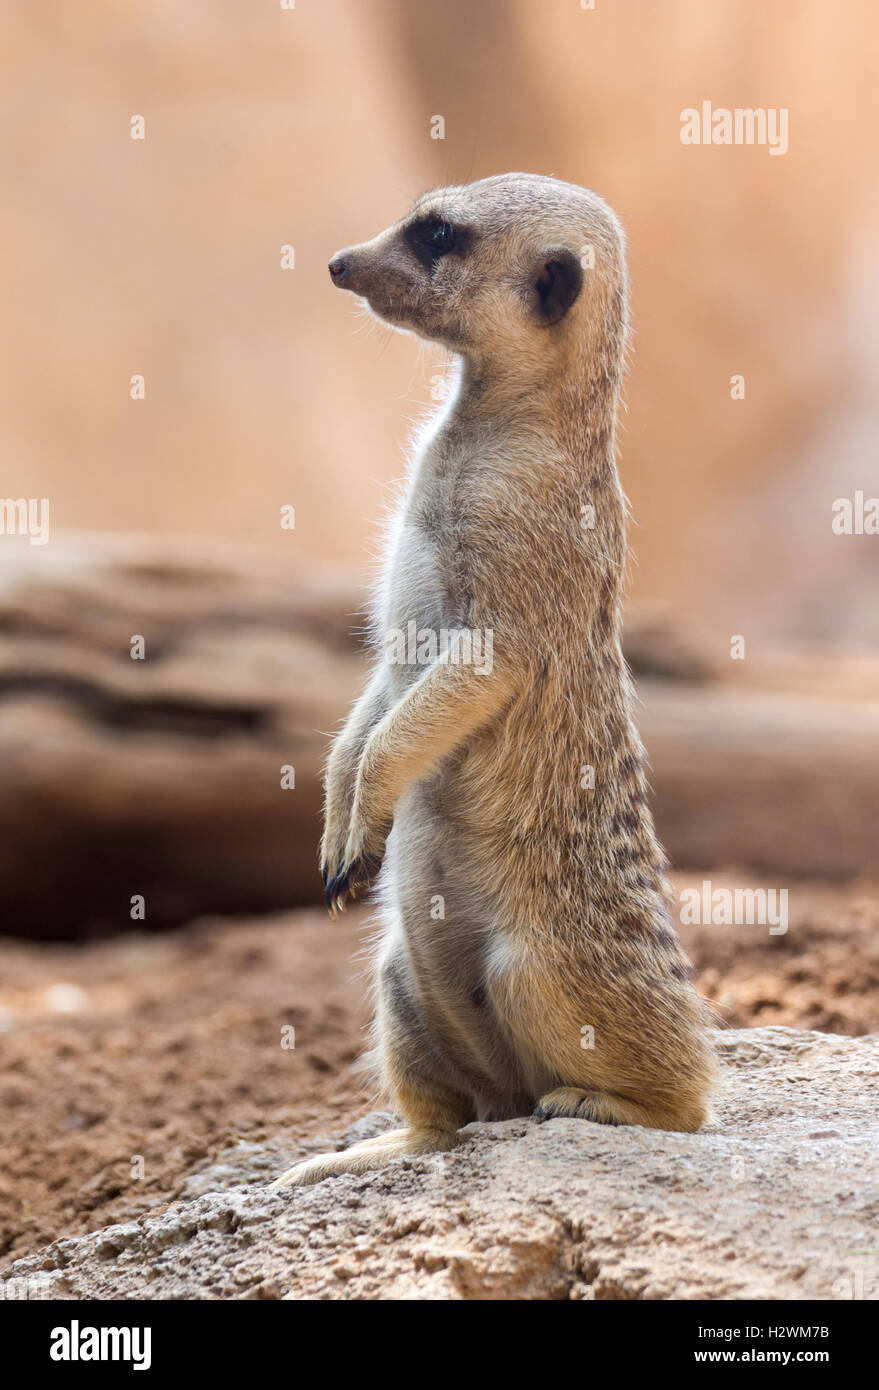 An meerkat standing in typical pose - Stock Image